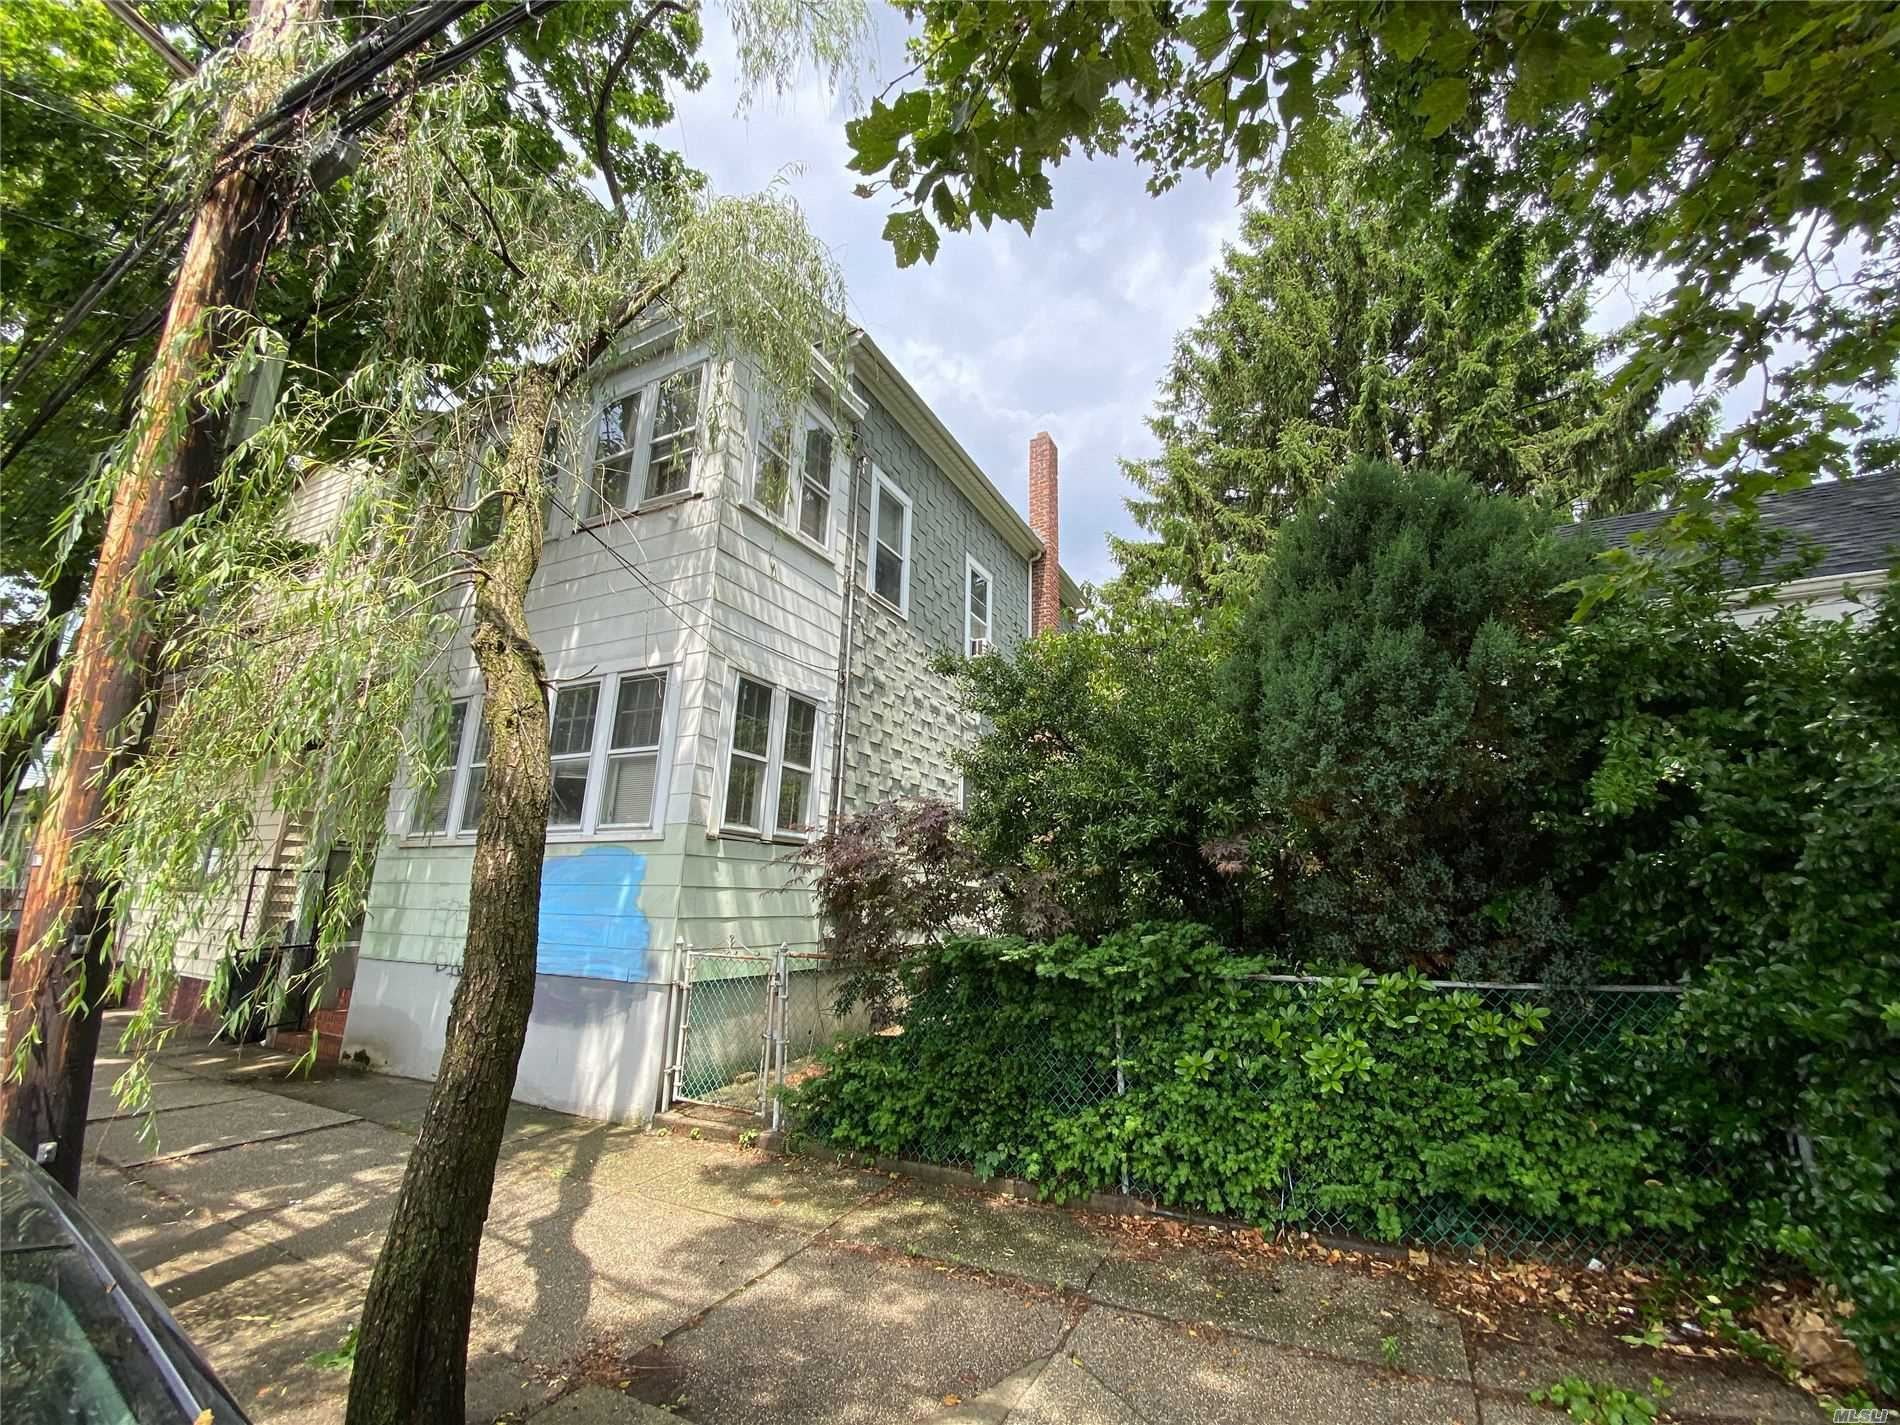 78-29 90th Avenue, Woodhaven, NY 11421 - MLS#: 3228955